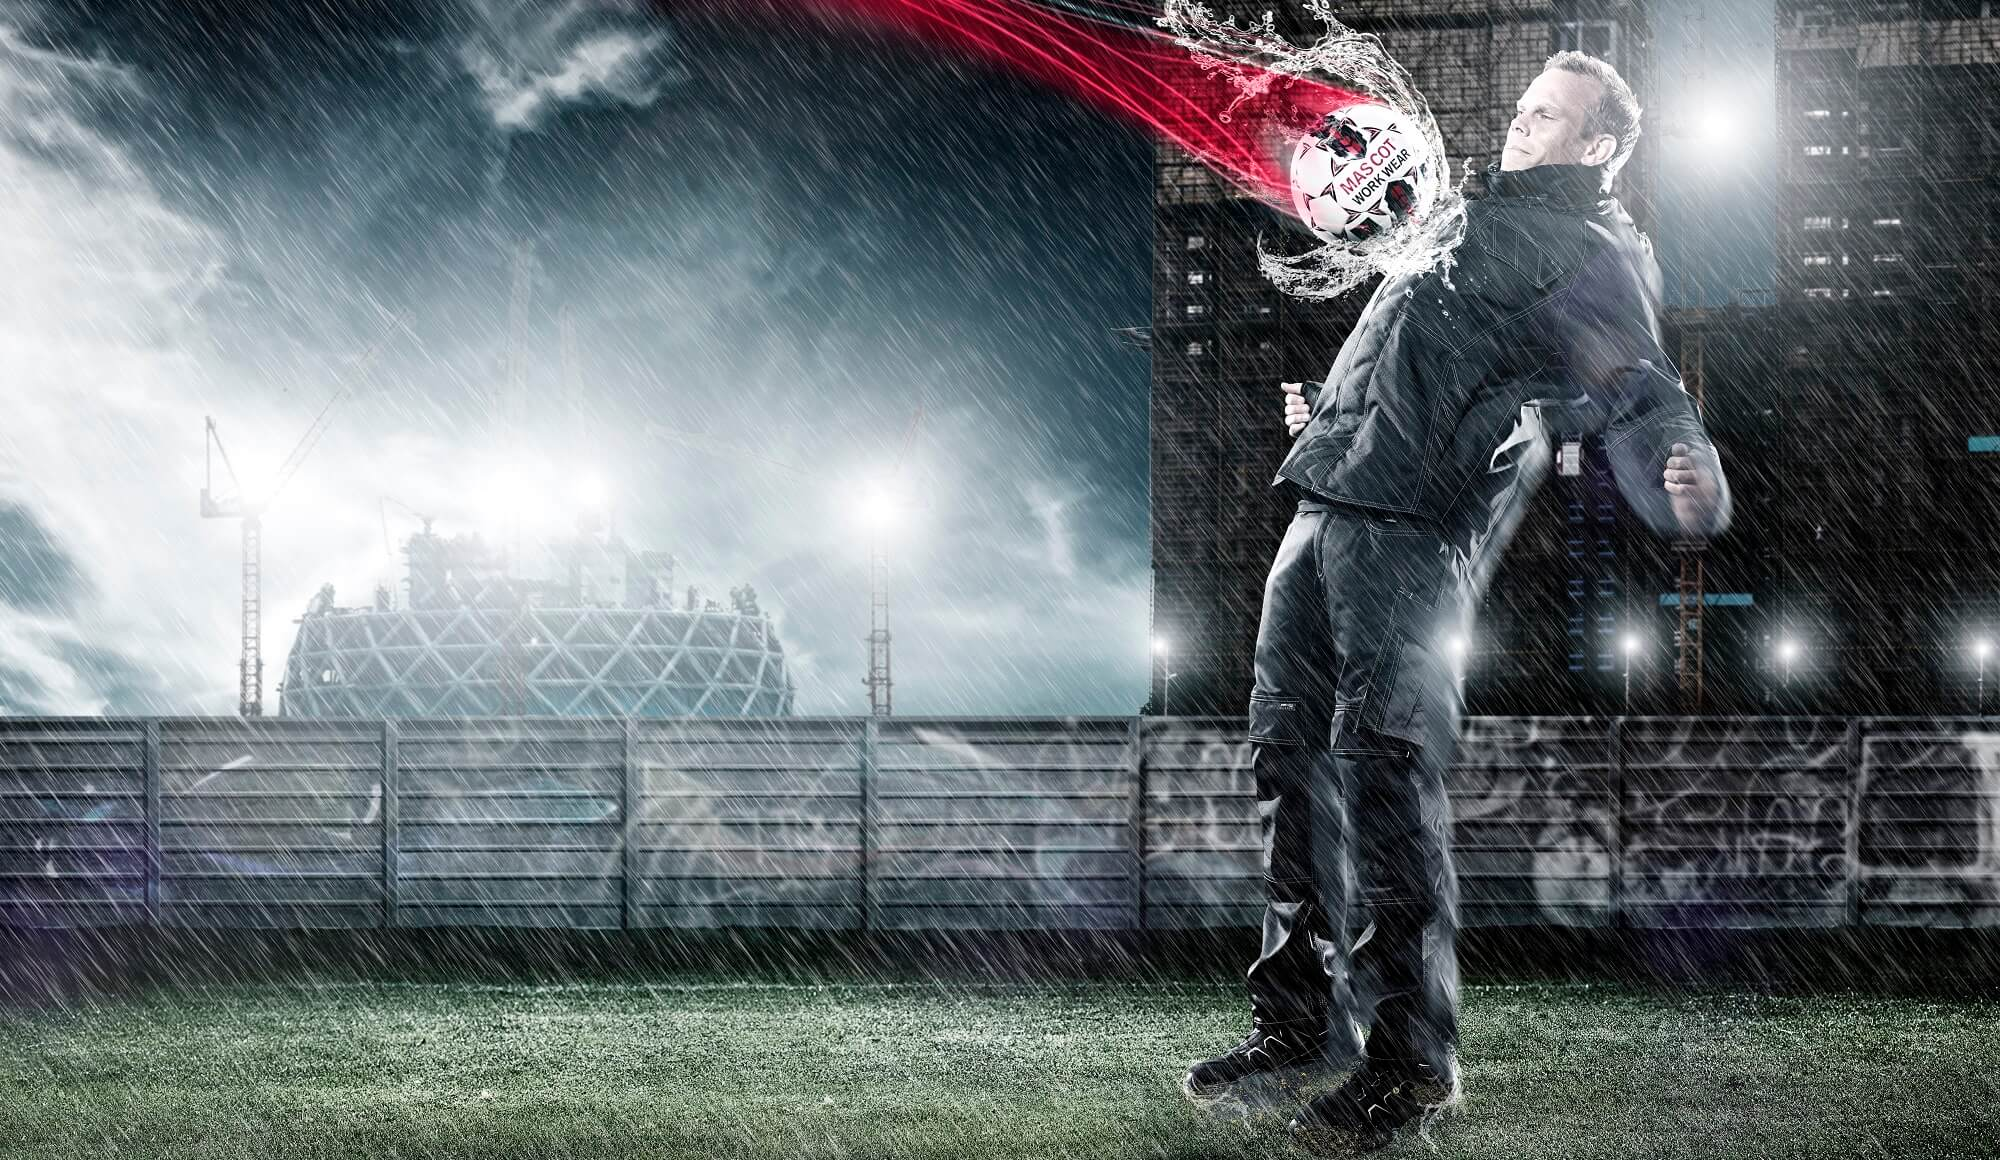 Rain Jacket - Man - Football Field